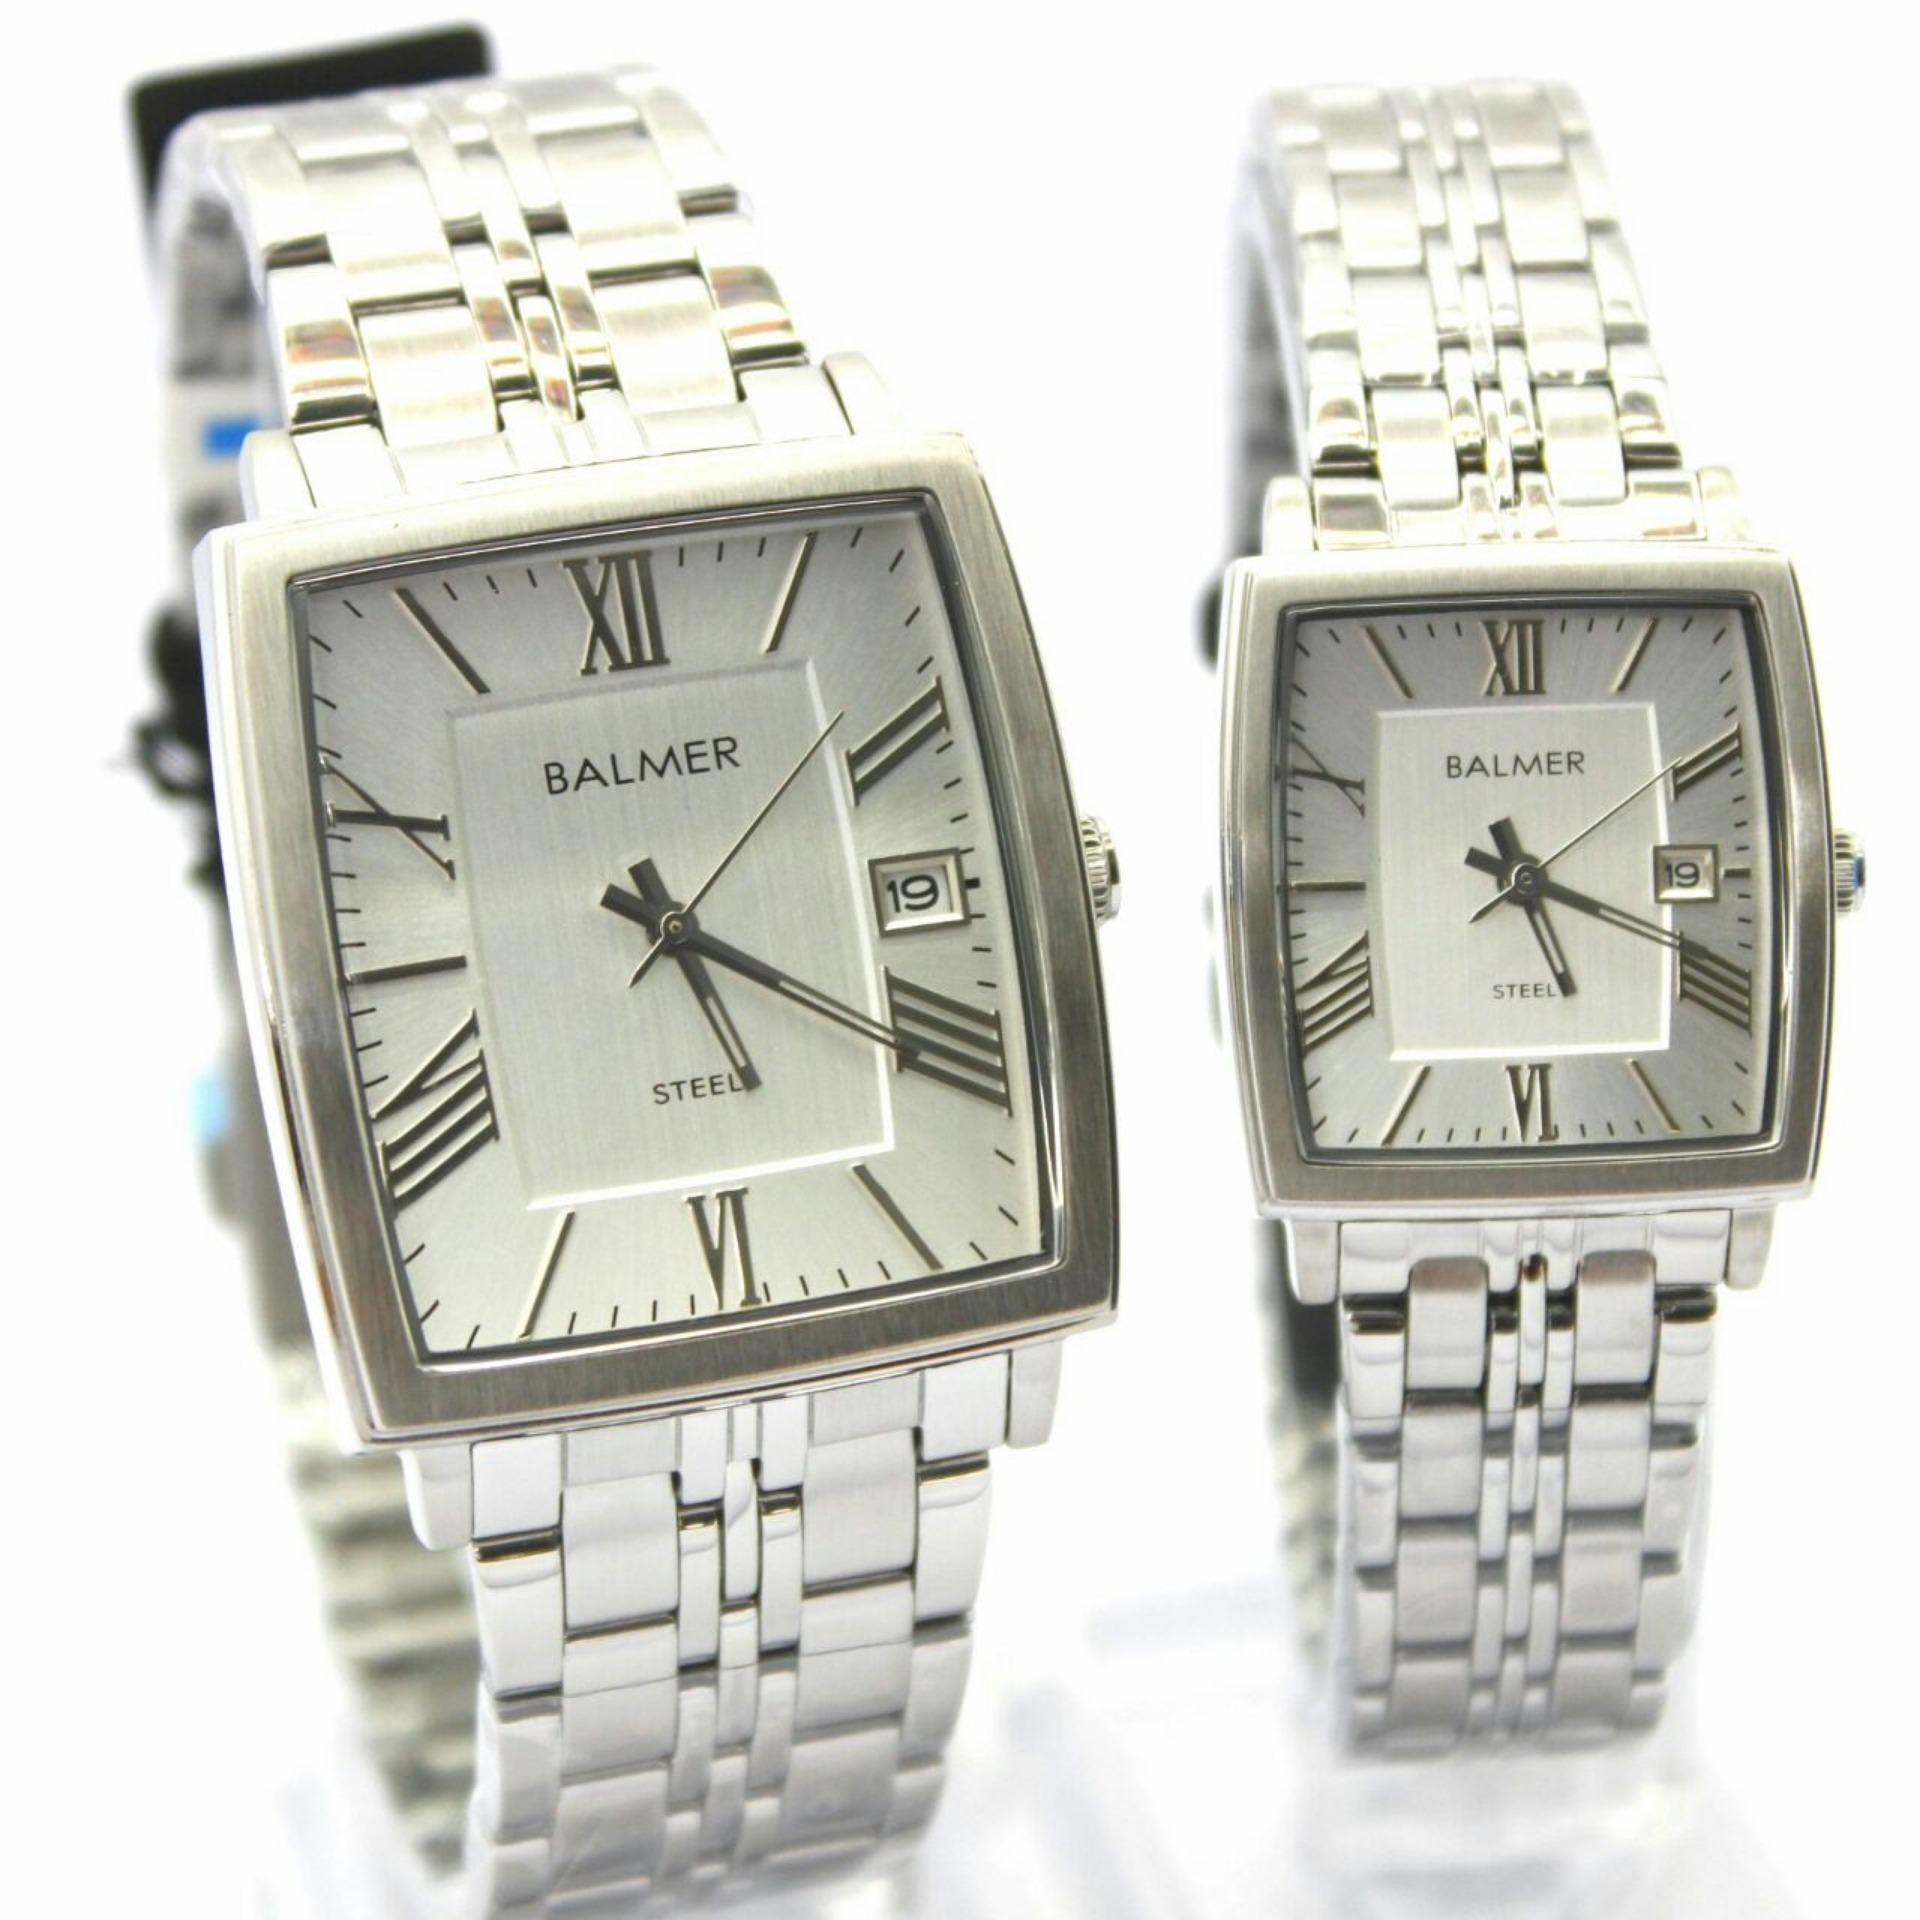 Balmer Jam Tangan Pria Sapphire Style Stainless Steel Strap B7912m4 Casual Man D47h670bl7907mslvphb Chronograph Silver Bl7966vr Couple Original Analog Mode